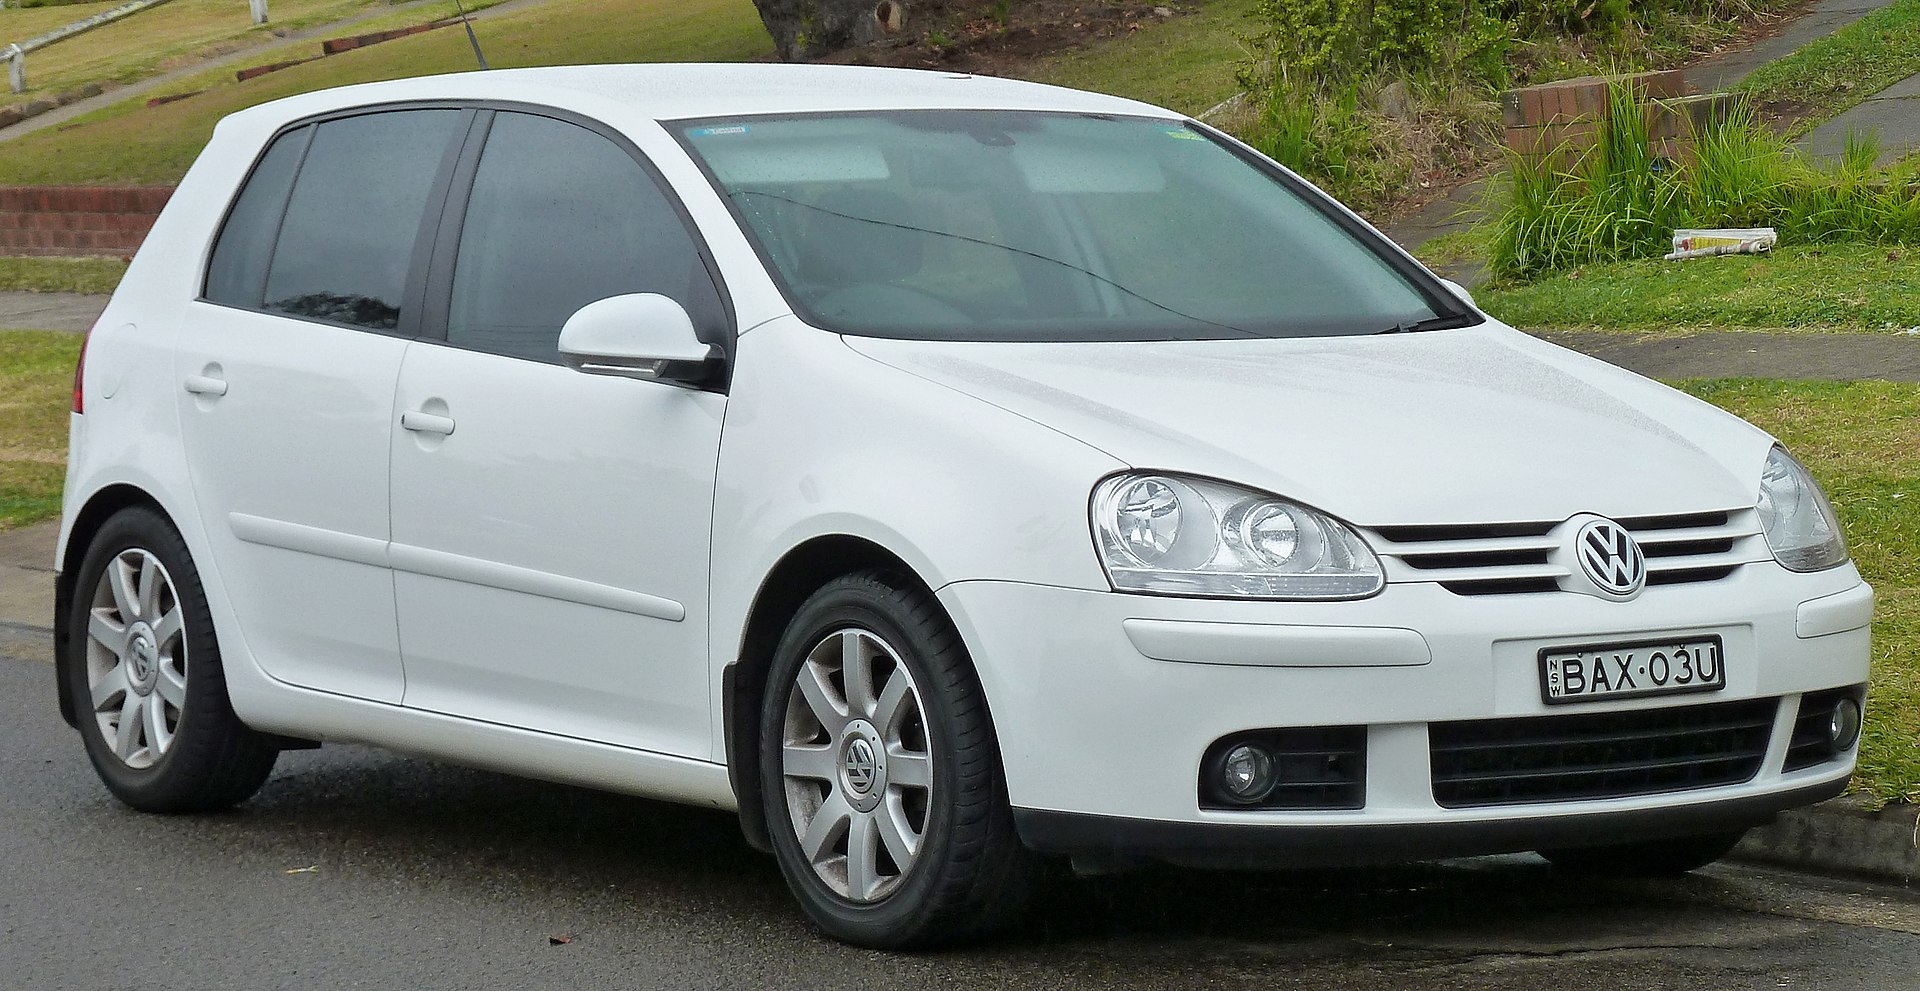 2007 Volkswagen Golf (1K MY07) Sportline 2.0 TDI 5-door hatchback (2010-07-05).jpg